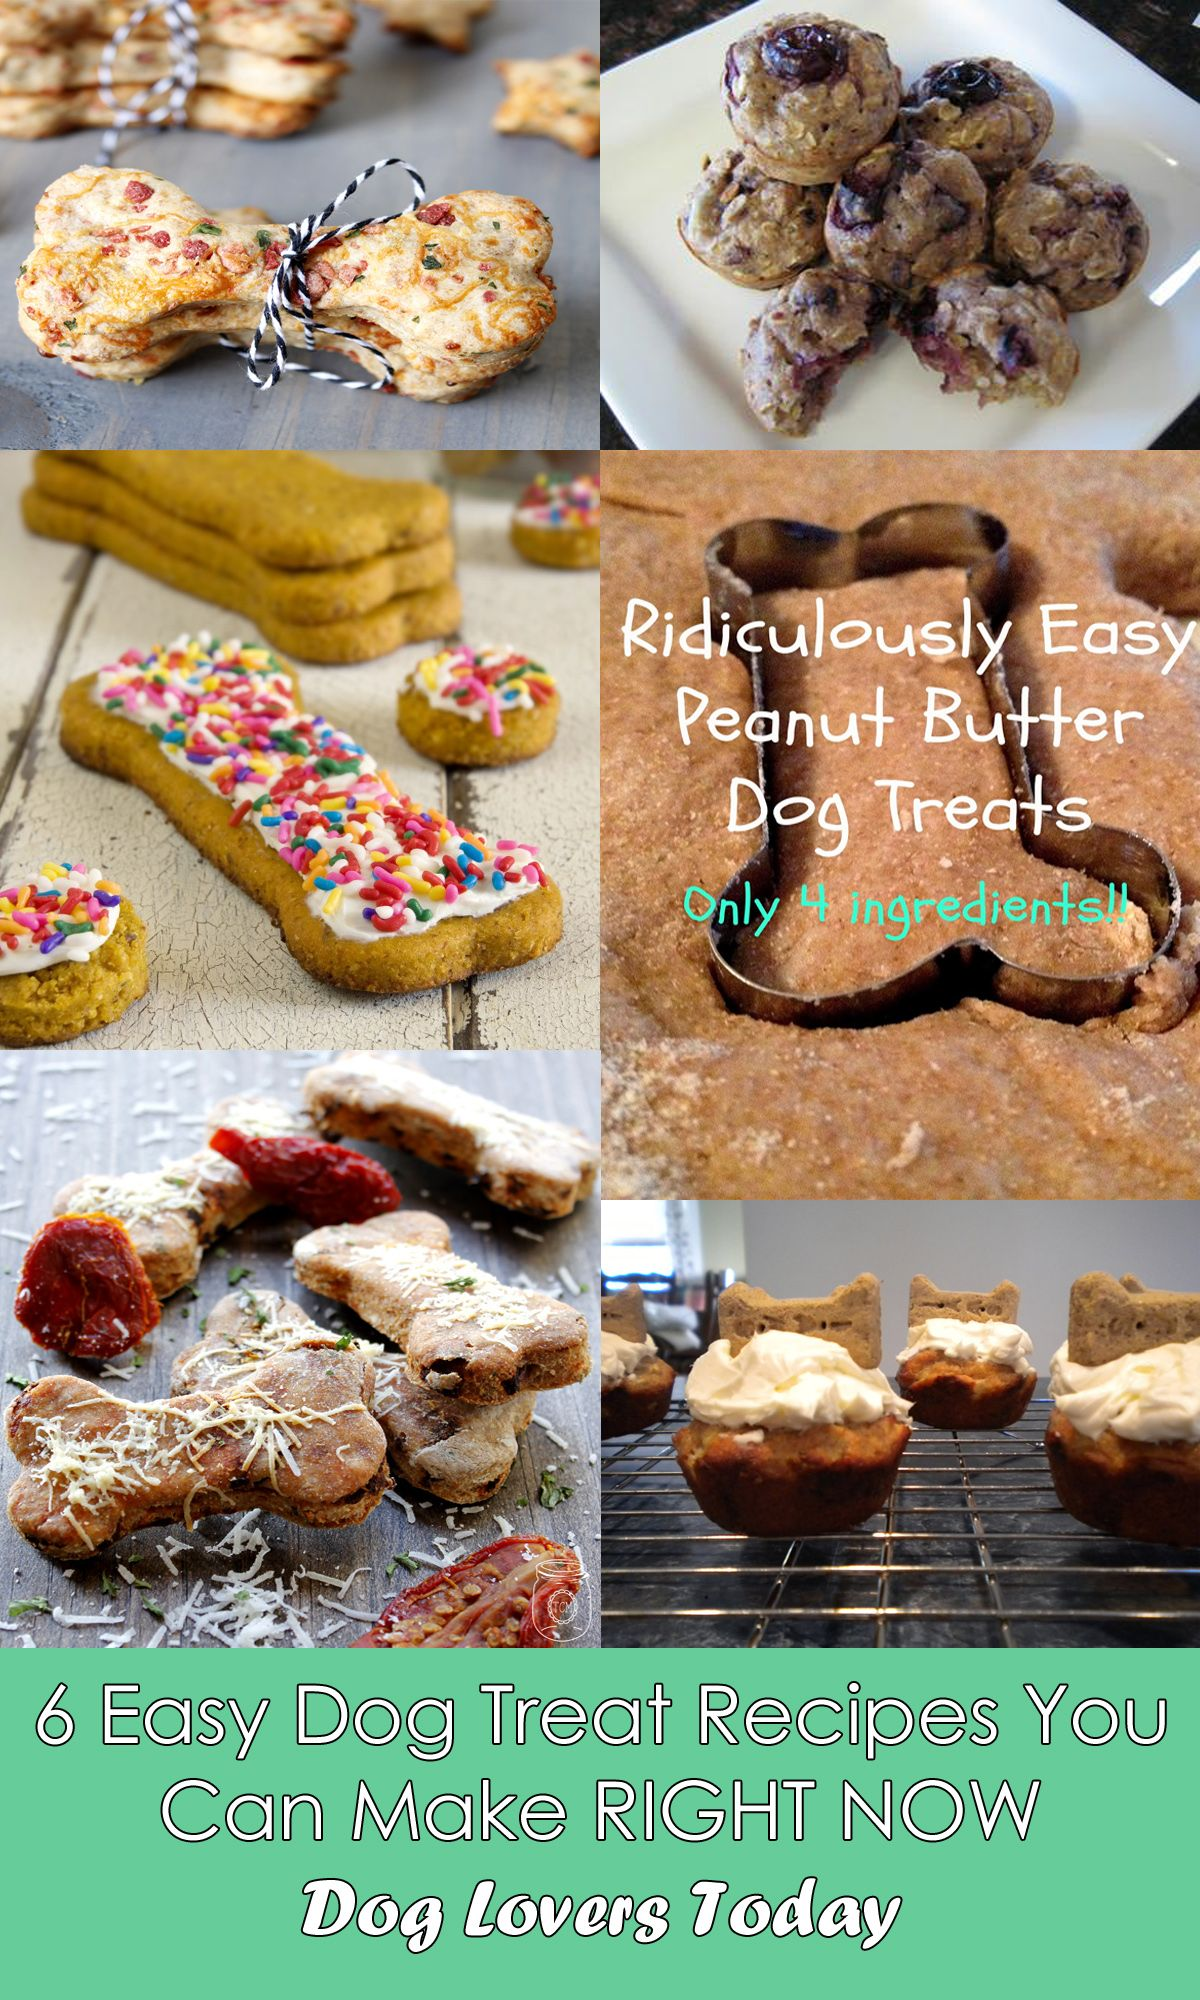 Six Easy Dog Teat Recipes You Can Make RIGHT NOW | Dog Lovers Today